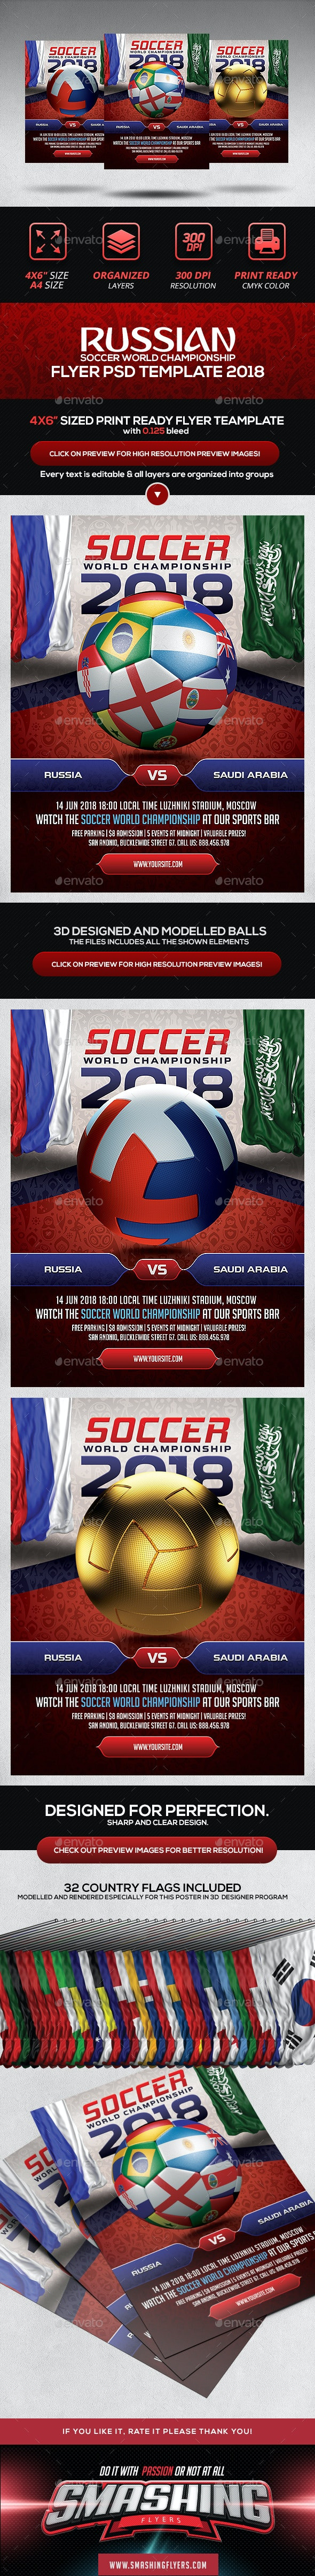 Soccer World Championship 2018 Flyer - Sports Events